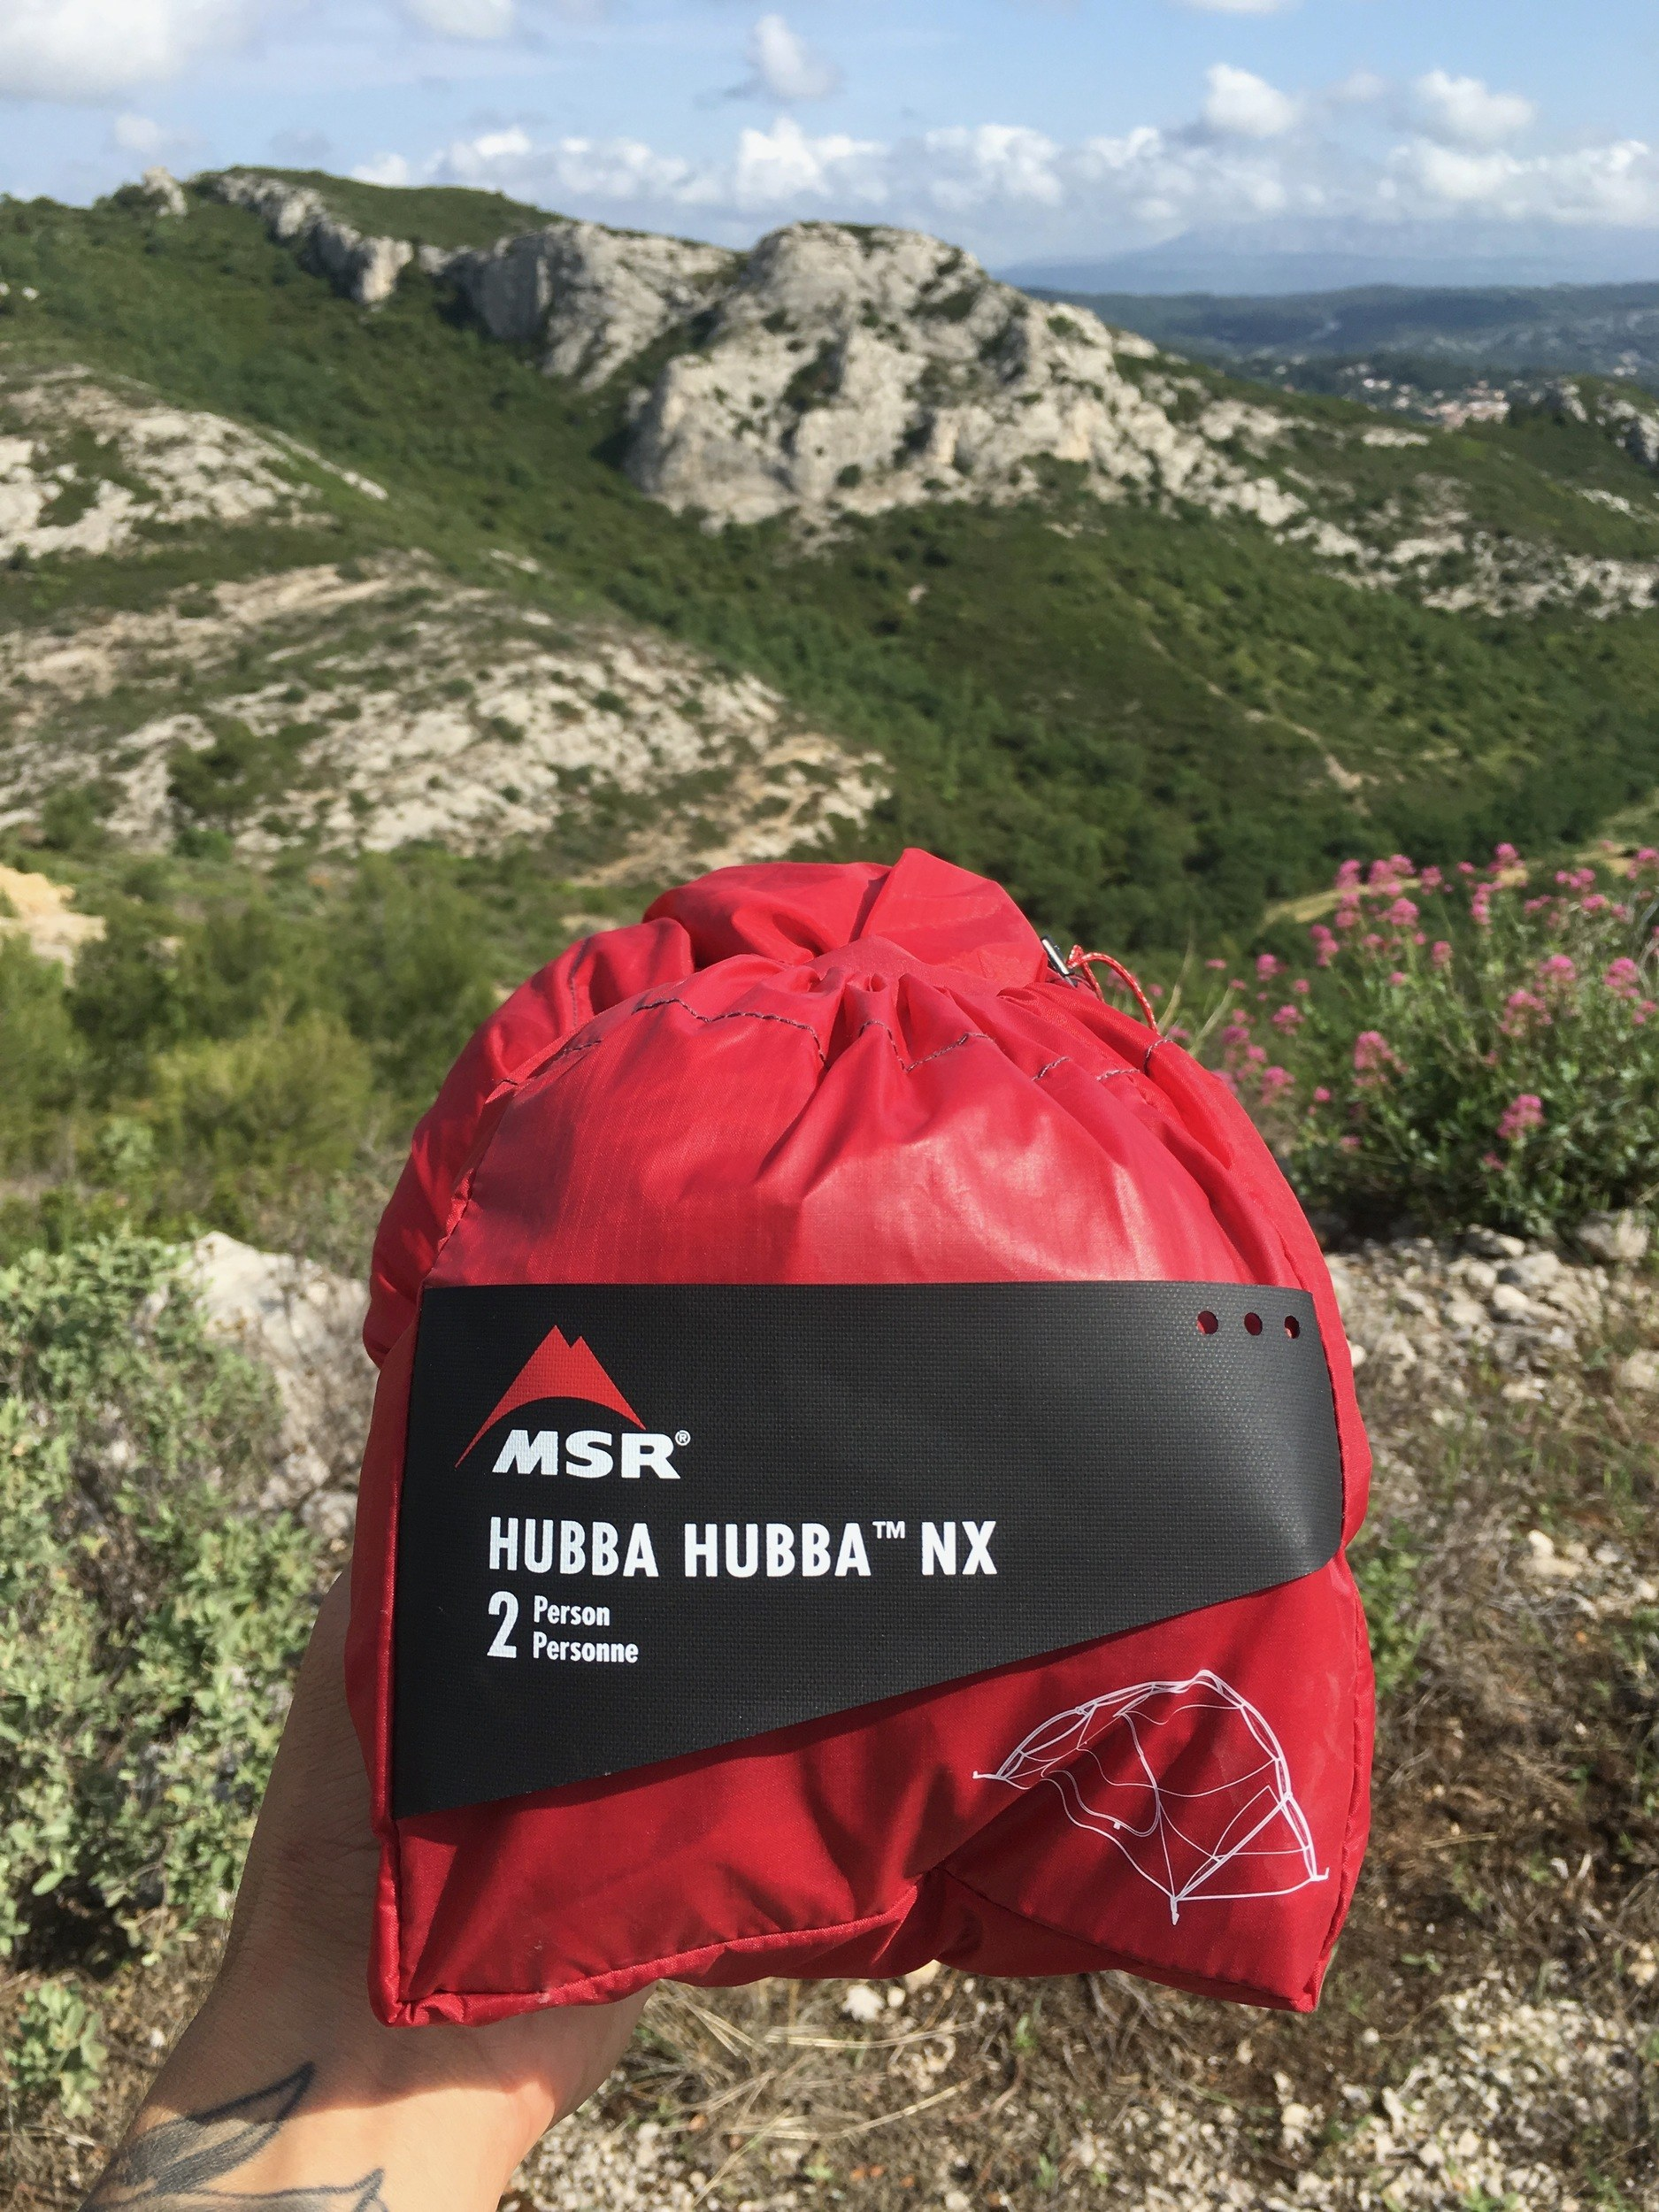 msr hubba hubba 2 person tent review